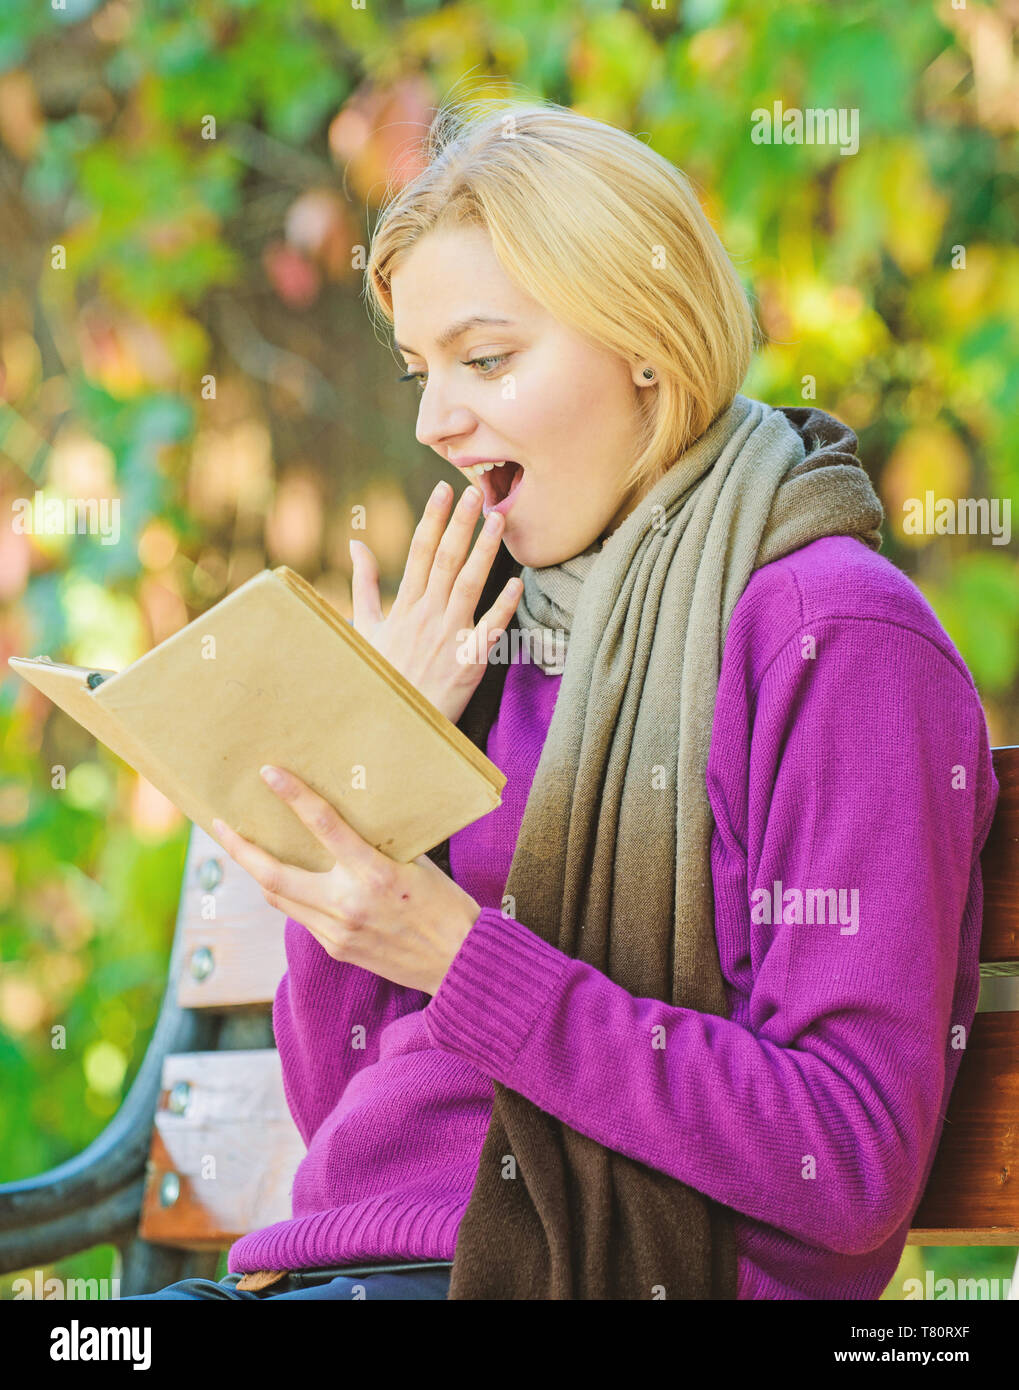 keen on reading. Time for review. further education. i learn for myself. woman read interesting book in spring park. Enjoying new chapter. Leave all your worries behind. She has got a book she needs. - Stock Image